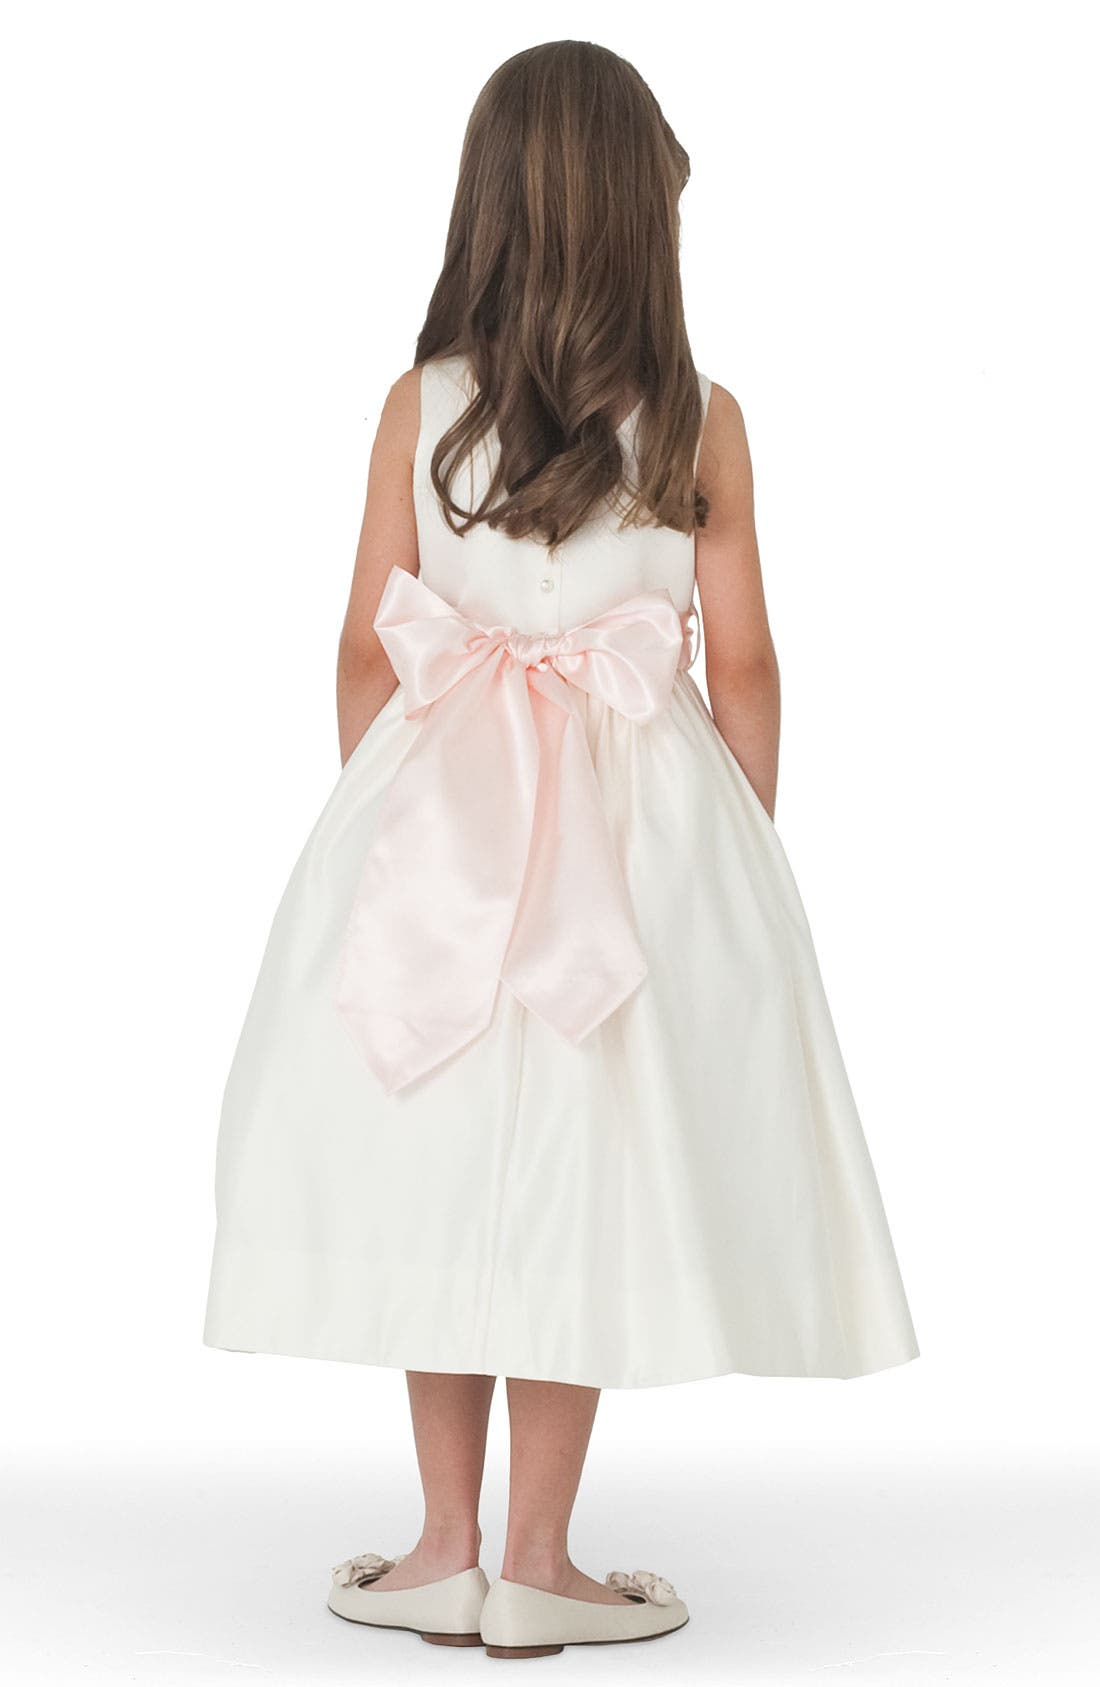 Flower girl dresses accessories nordstrom ombrellifo Gallery